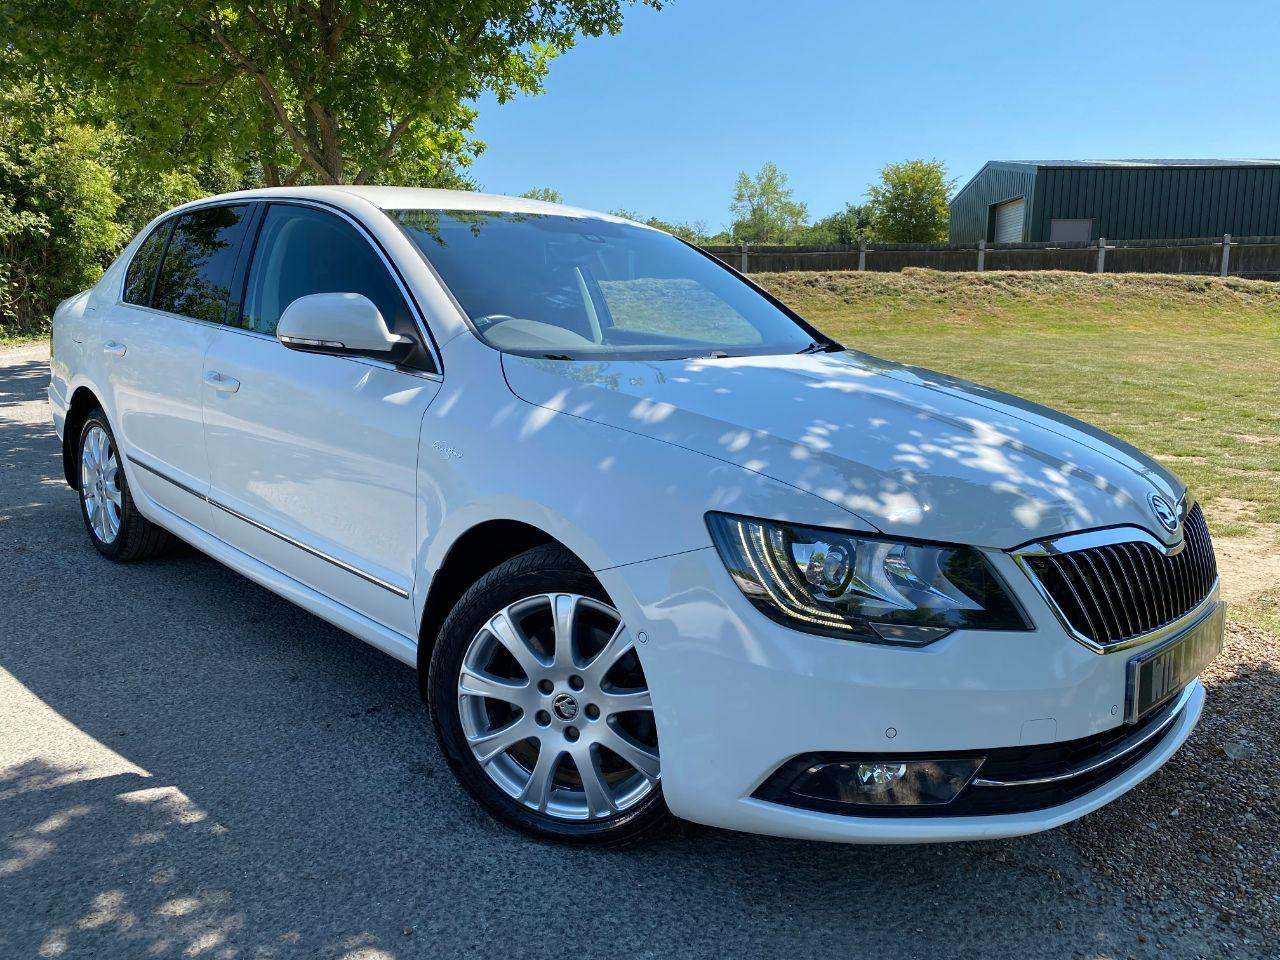 Skoda Superb 2.0 TDI CR 170 Laurin + Klement 4X4 5dr DSG (Heated Rear Seats! Low Miles! ++) Hatchback Diesel Candy White